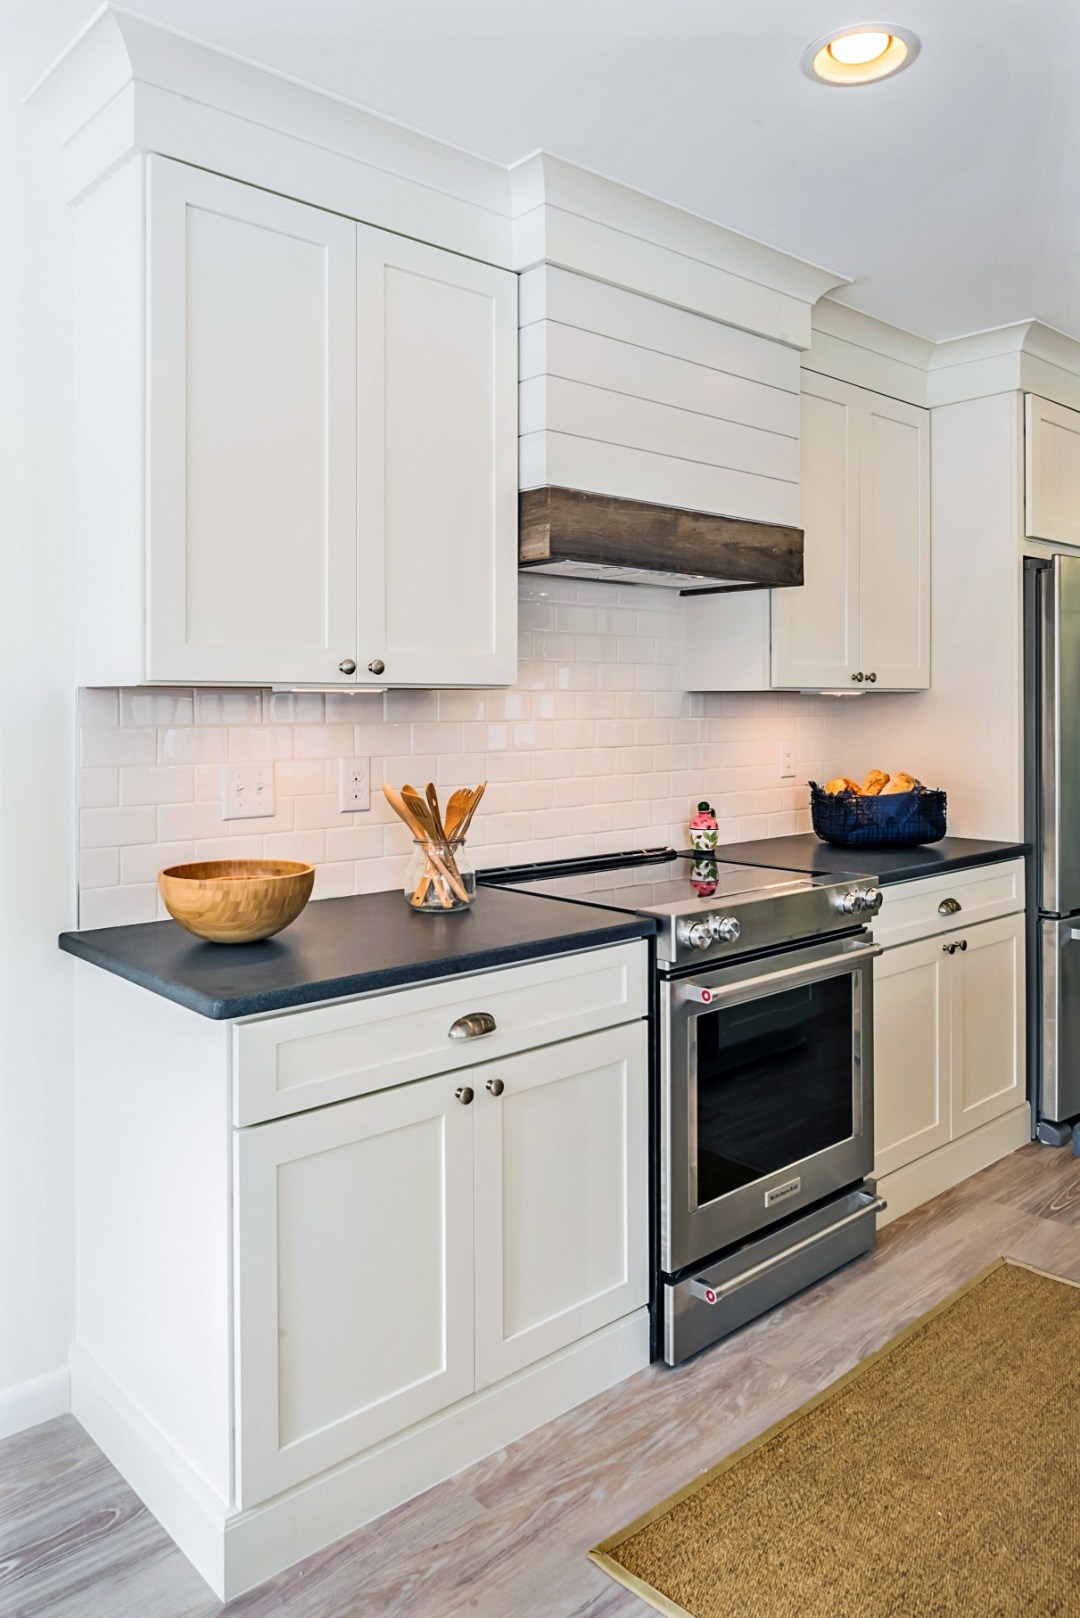 Kitchen in Wellington Parkway, Bethany Beach DE with White Cabinets, Black Granite Countertop and White Tile Backsplash